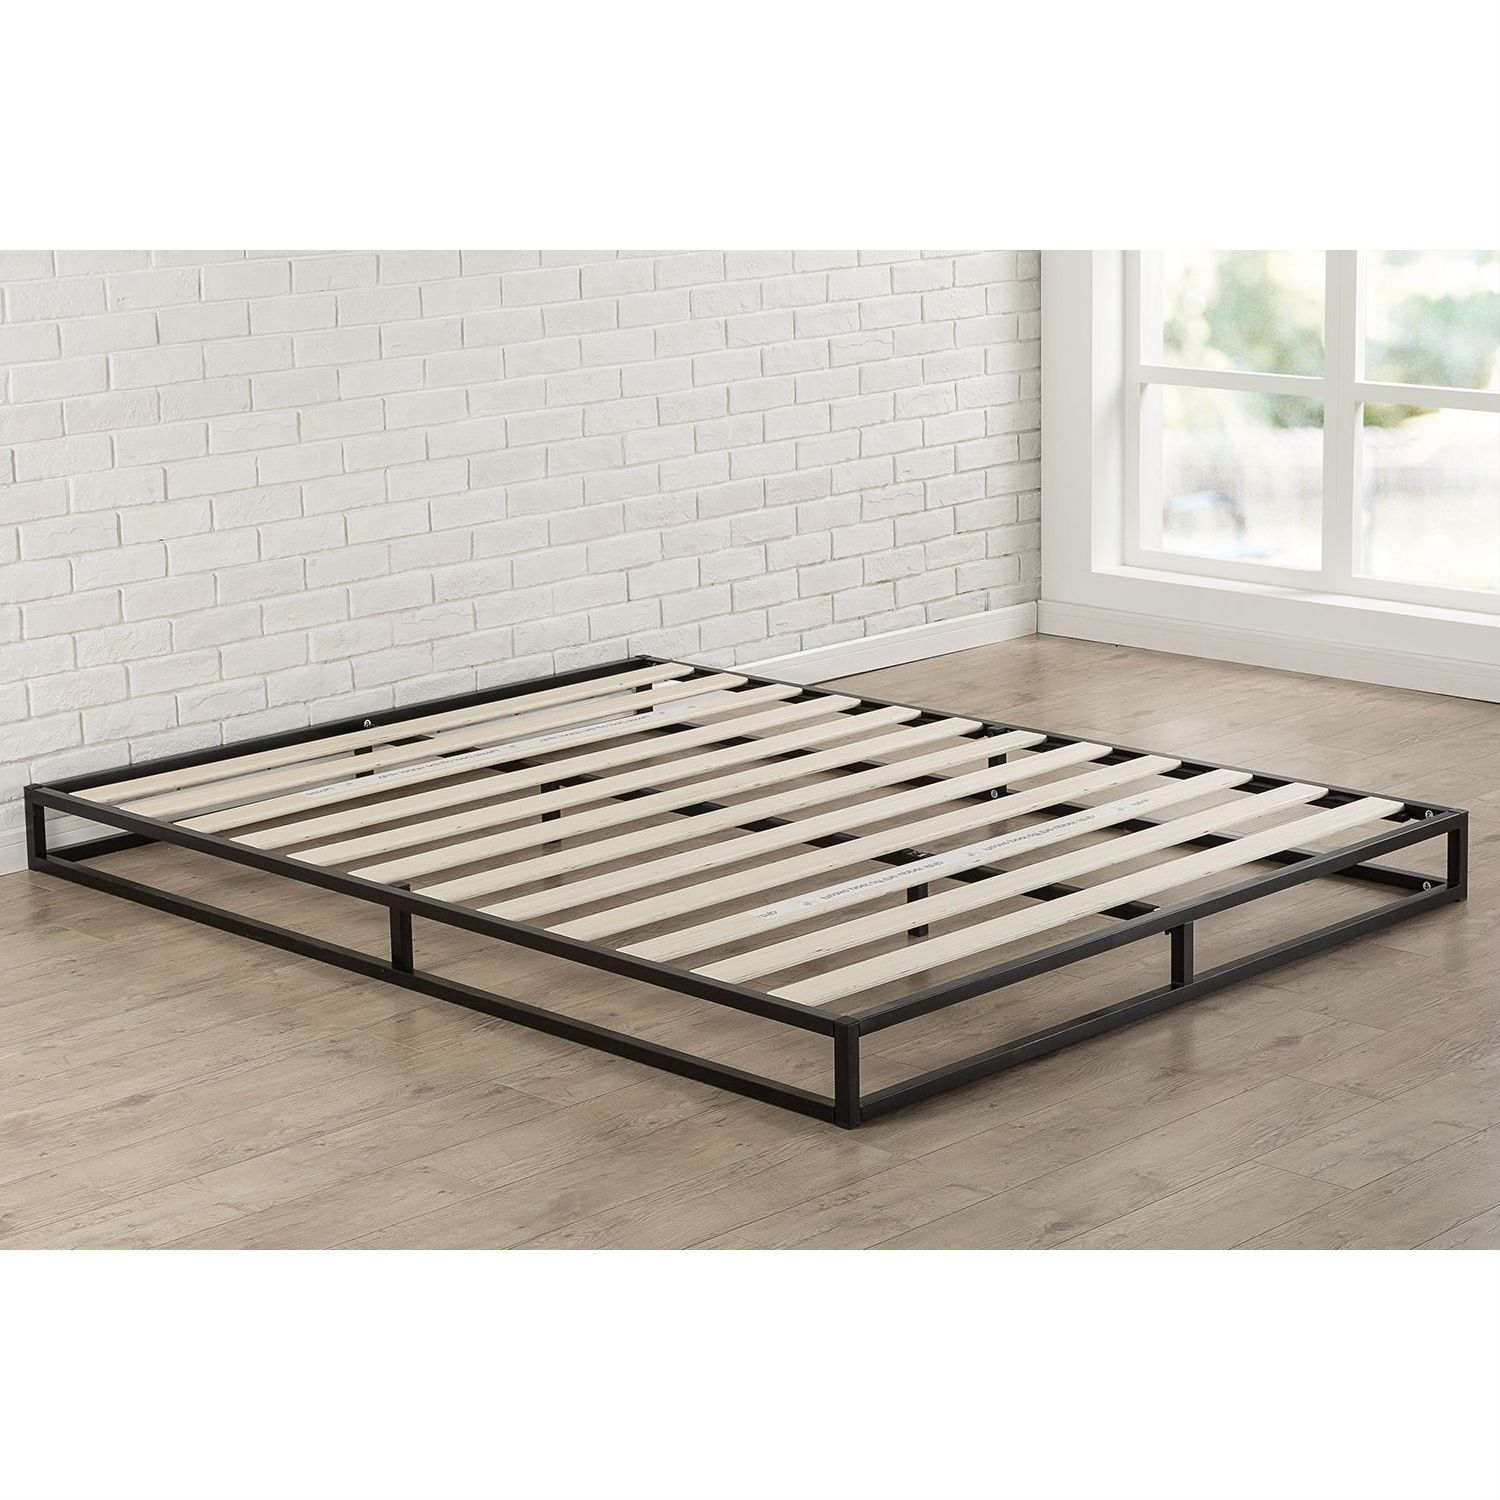 Low Platform Bed Frame | House | Pinterest | Camas, Dormitorio y ...